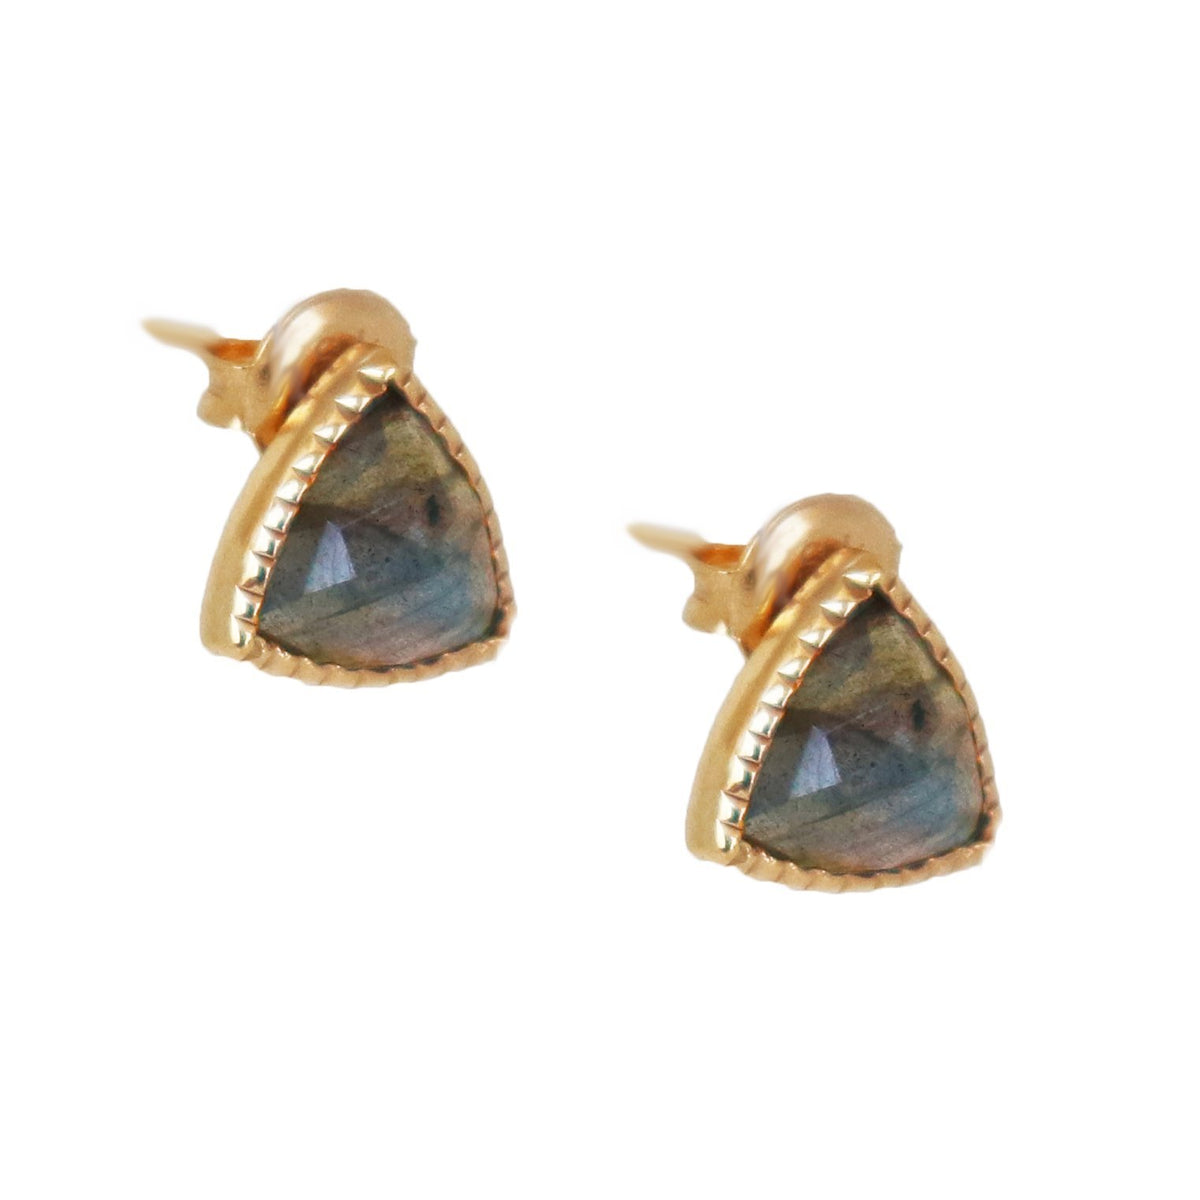 MINI FREEDOM STUD EARRINGS - LABRADORITE & GOLD - SO PRETTY CARA COTTER